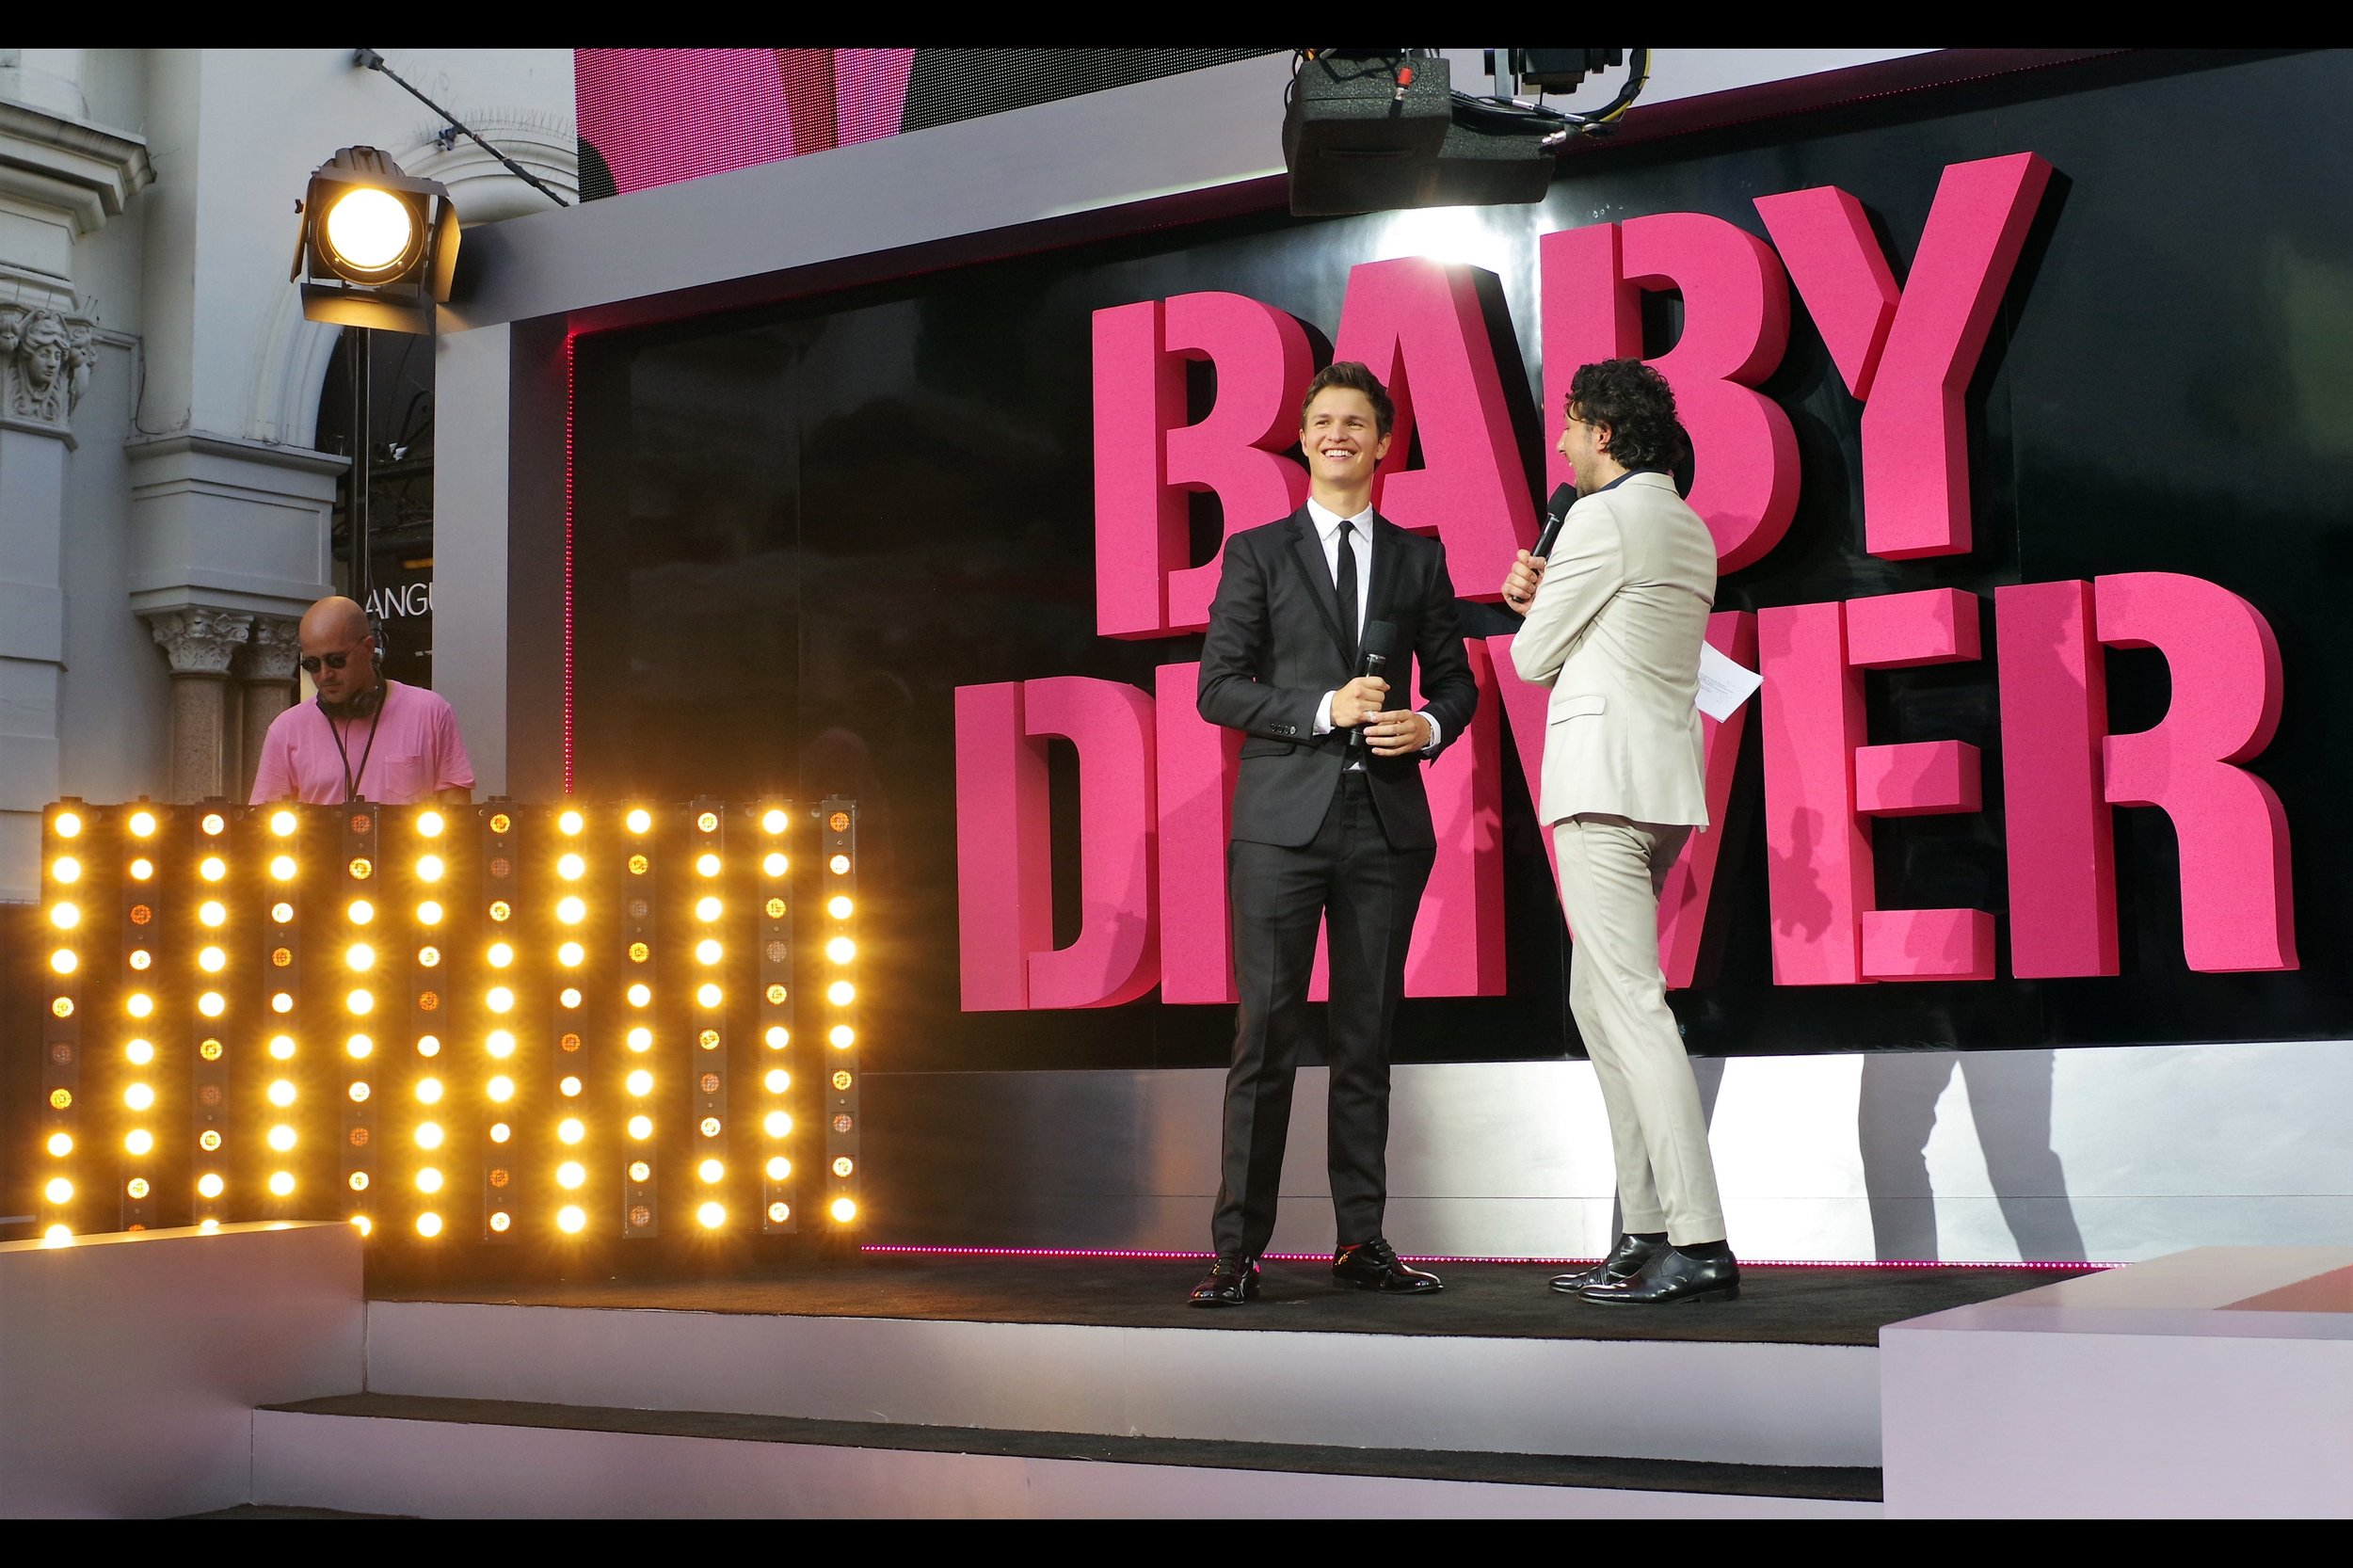 June 26th : And I even got to see the movie! At the    'Baby Driver'    premiere.